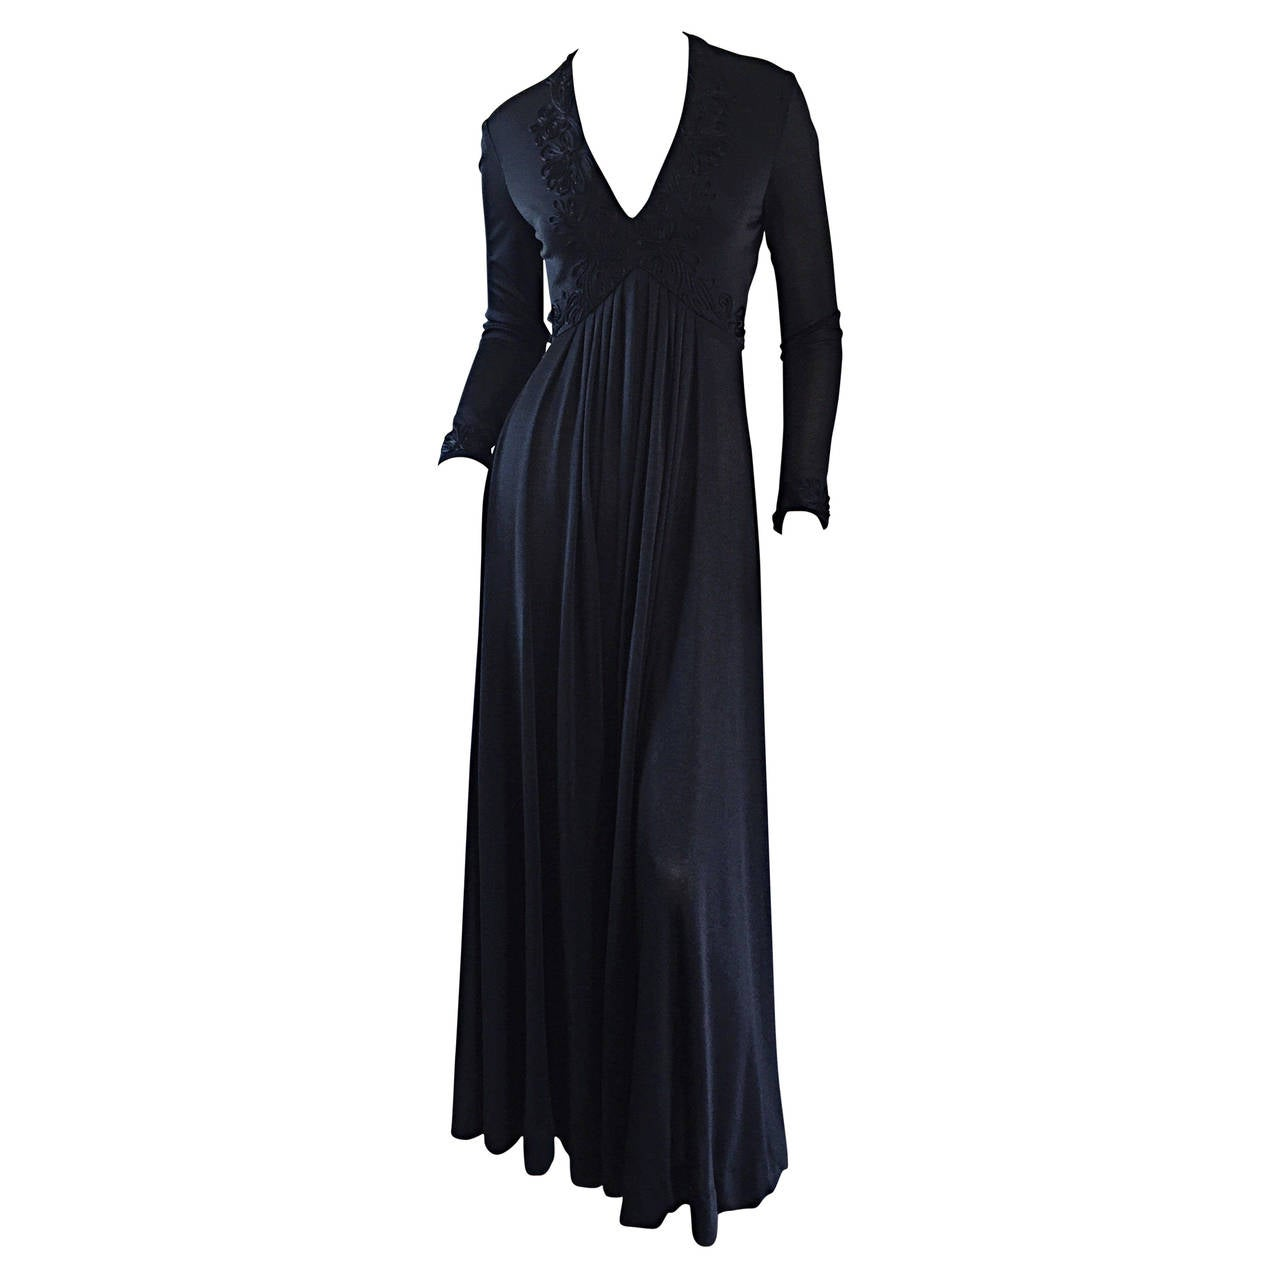 Vintage Jack Bryan Black Jersey Maxi Dress w/ Intricate Embroidery 1970s 70s